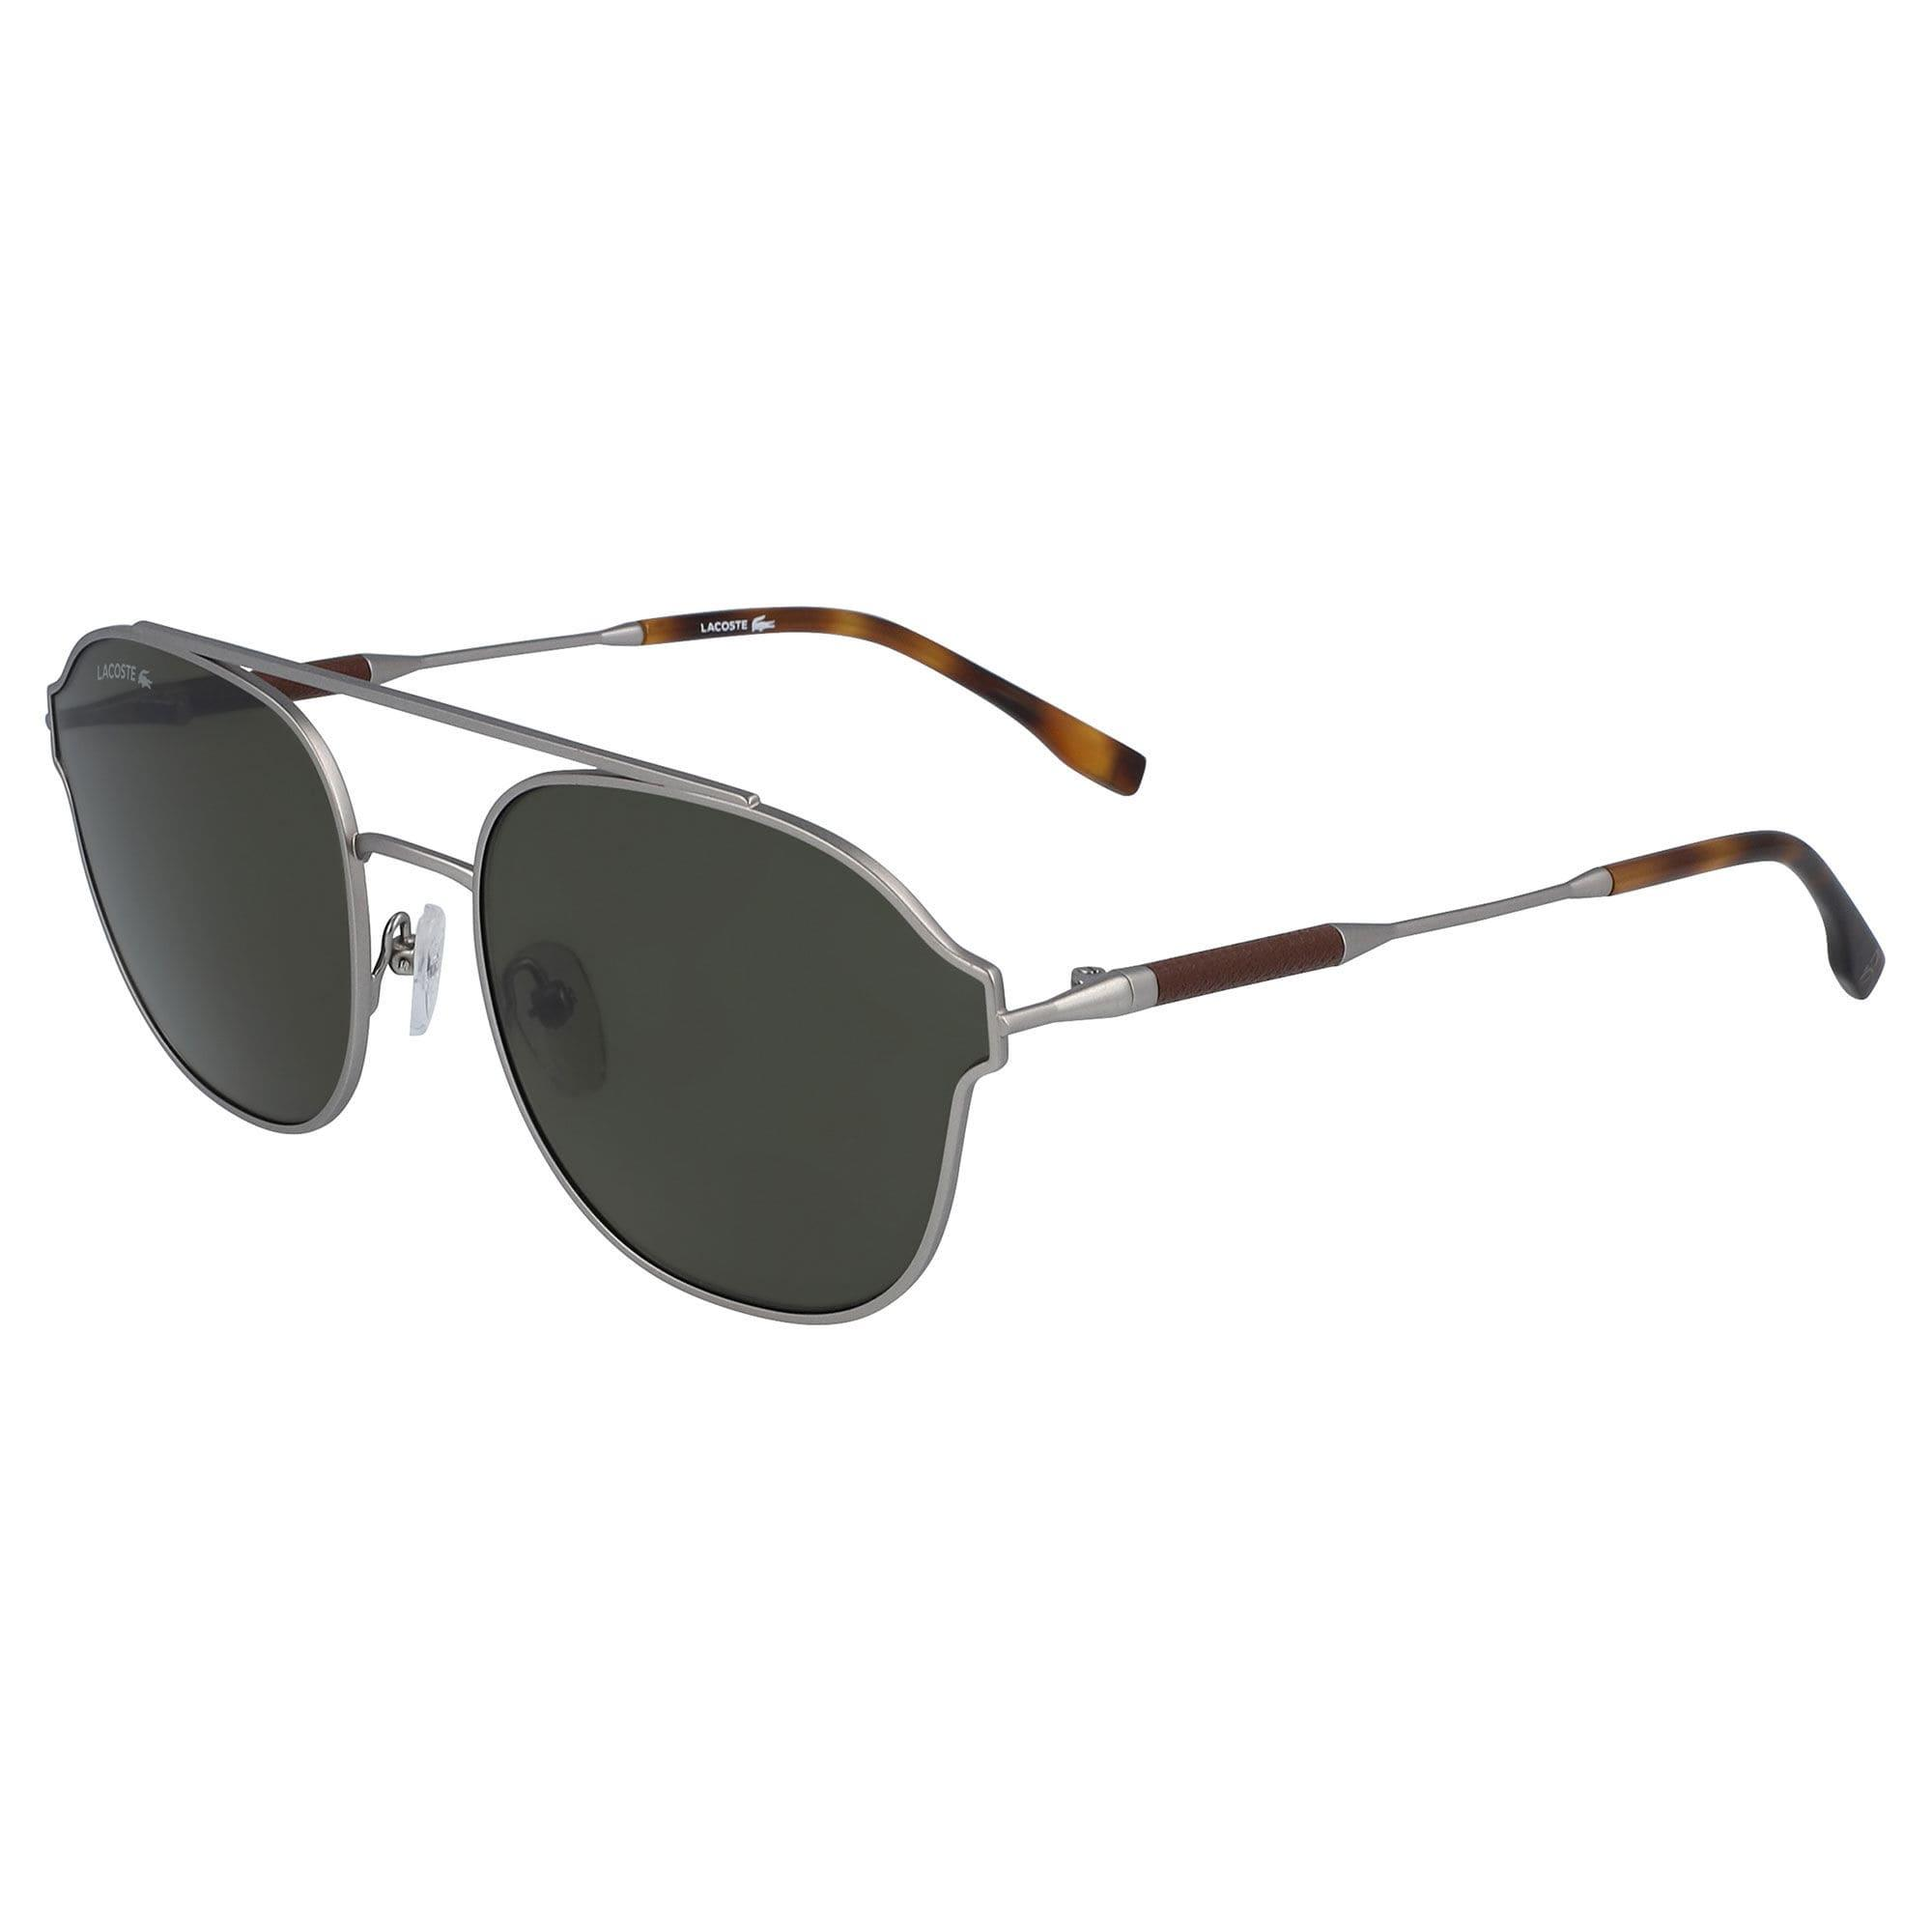 ff7135f157d2 Lacoste - Multicolor Navigator Metal Leather Punch Sunglasses - Lyst. View  fullscreen